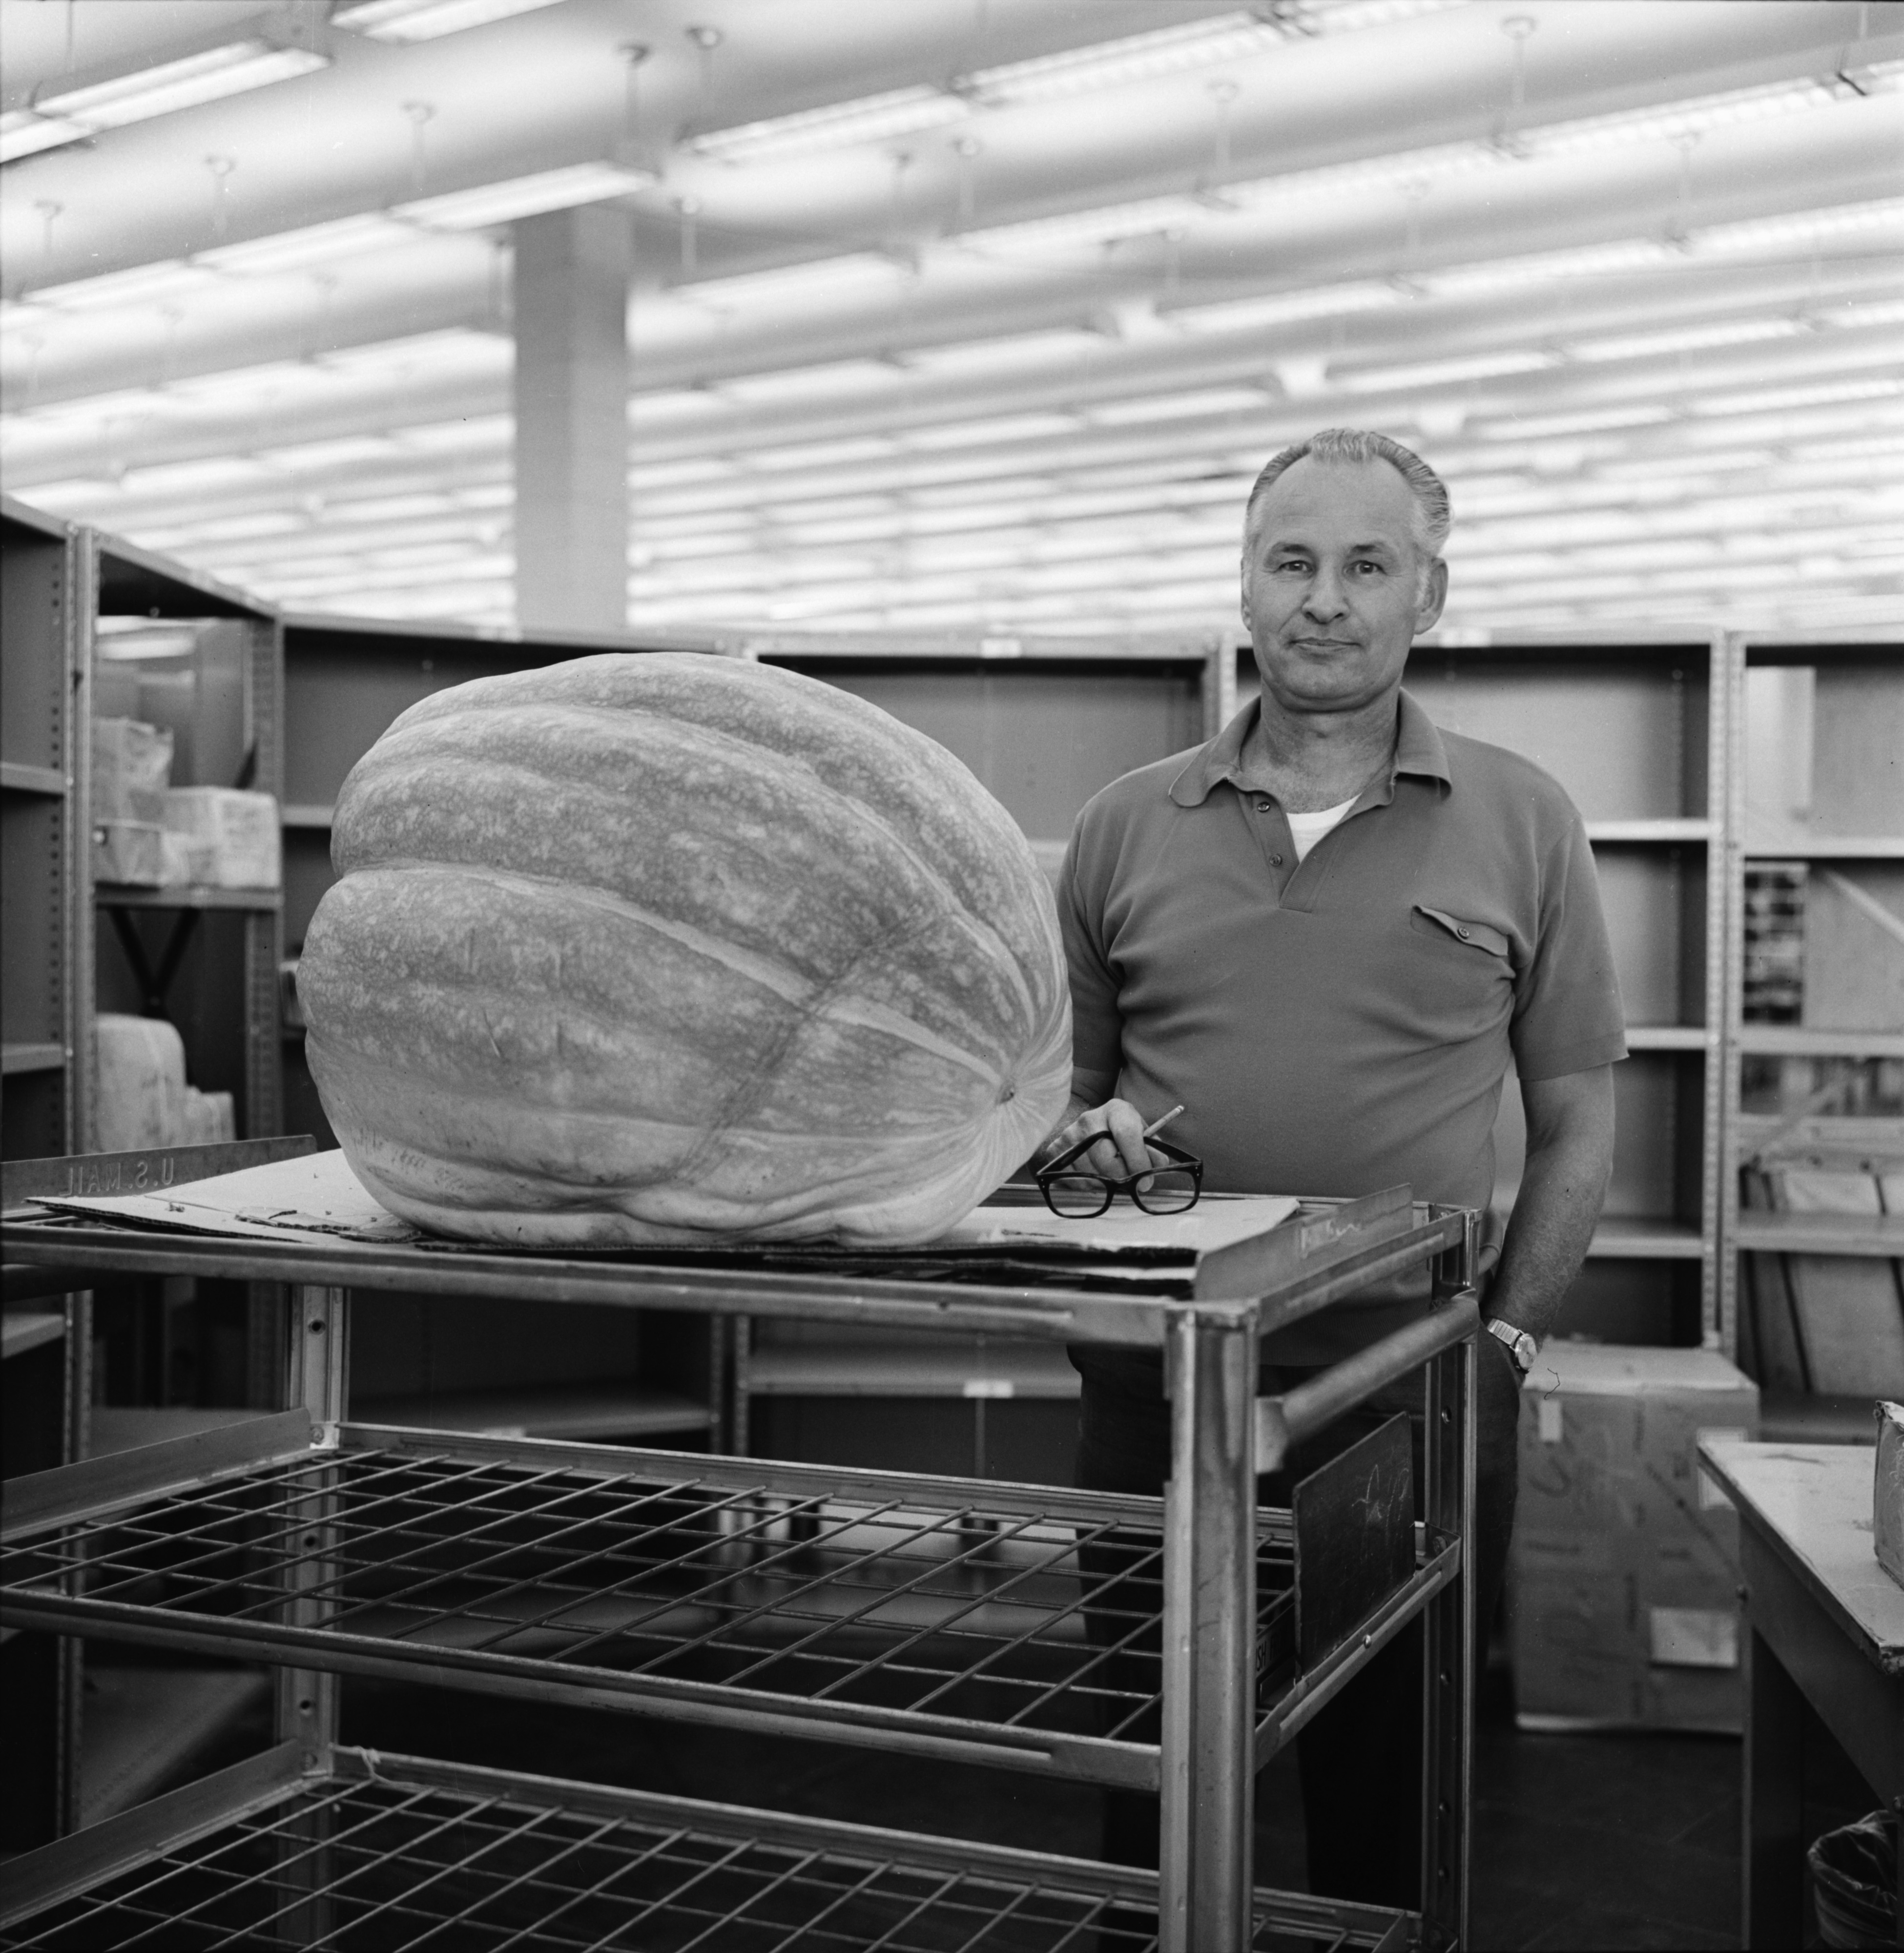 Harry F. Bruneau and Giant Squash, October 1969 image